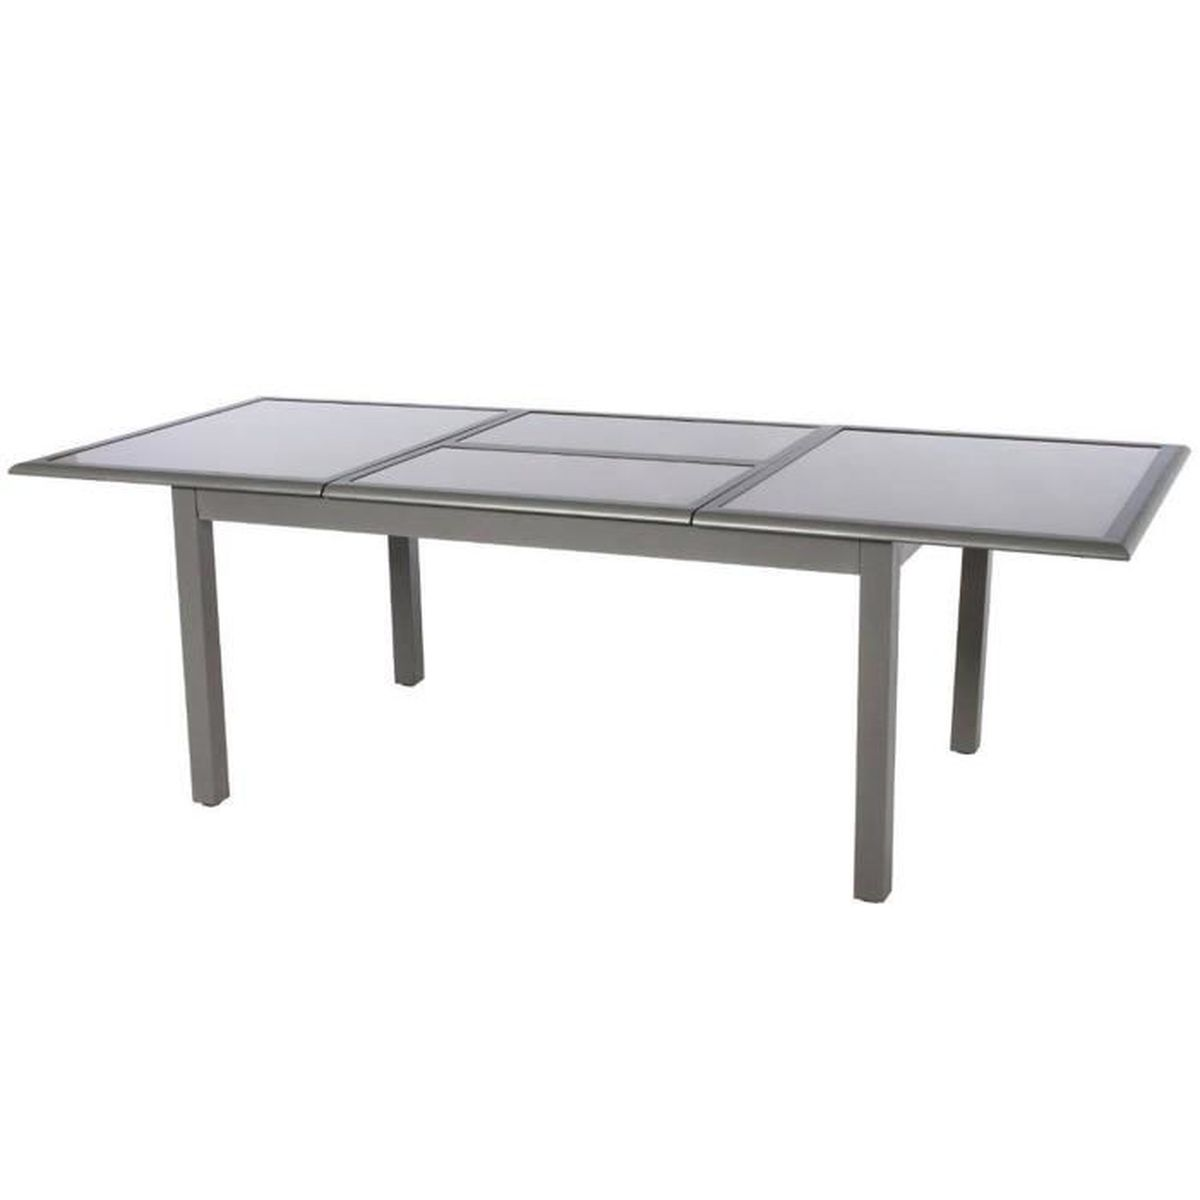 table de jardin aluminium 240 cm achat vente table de jardin aluminium 240 cm pas cher. Black Bedroom Furniture Sets. Home Design Ideas